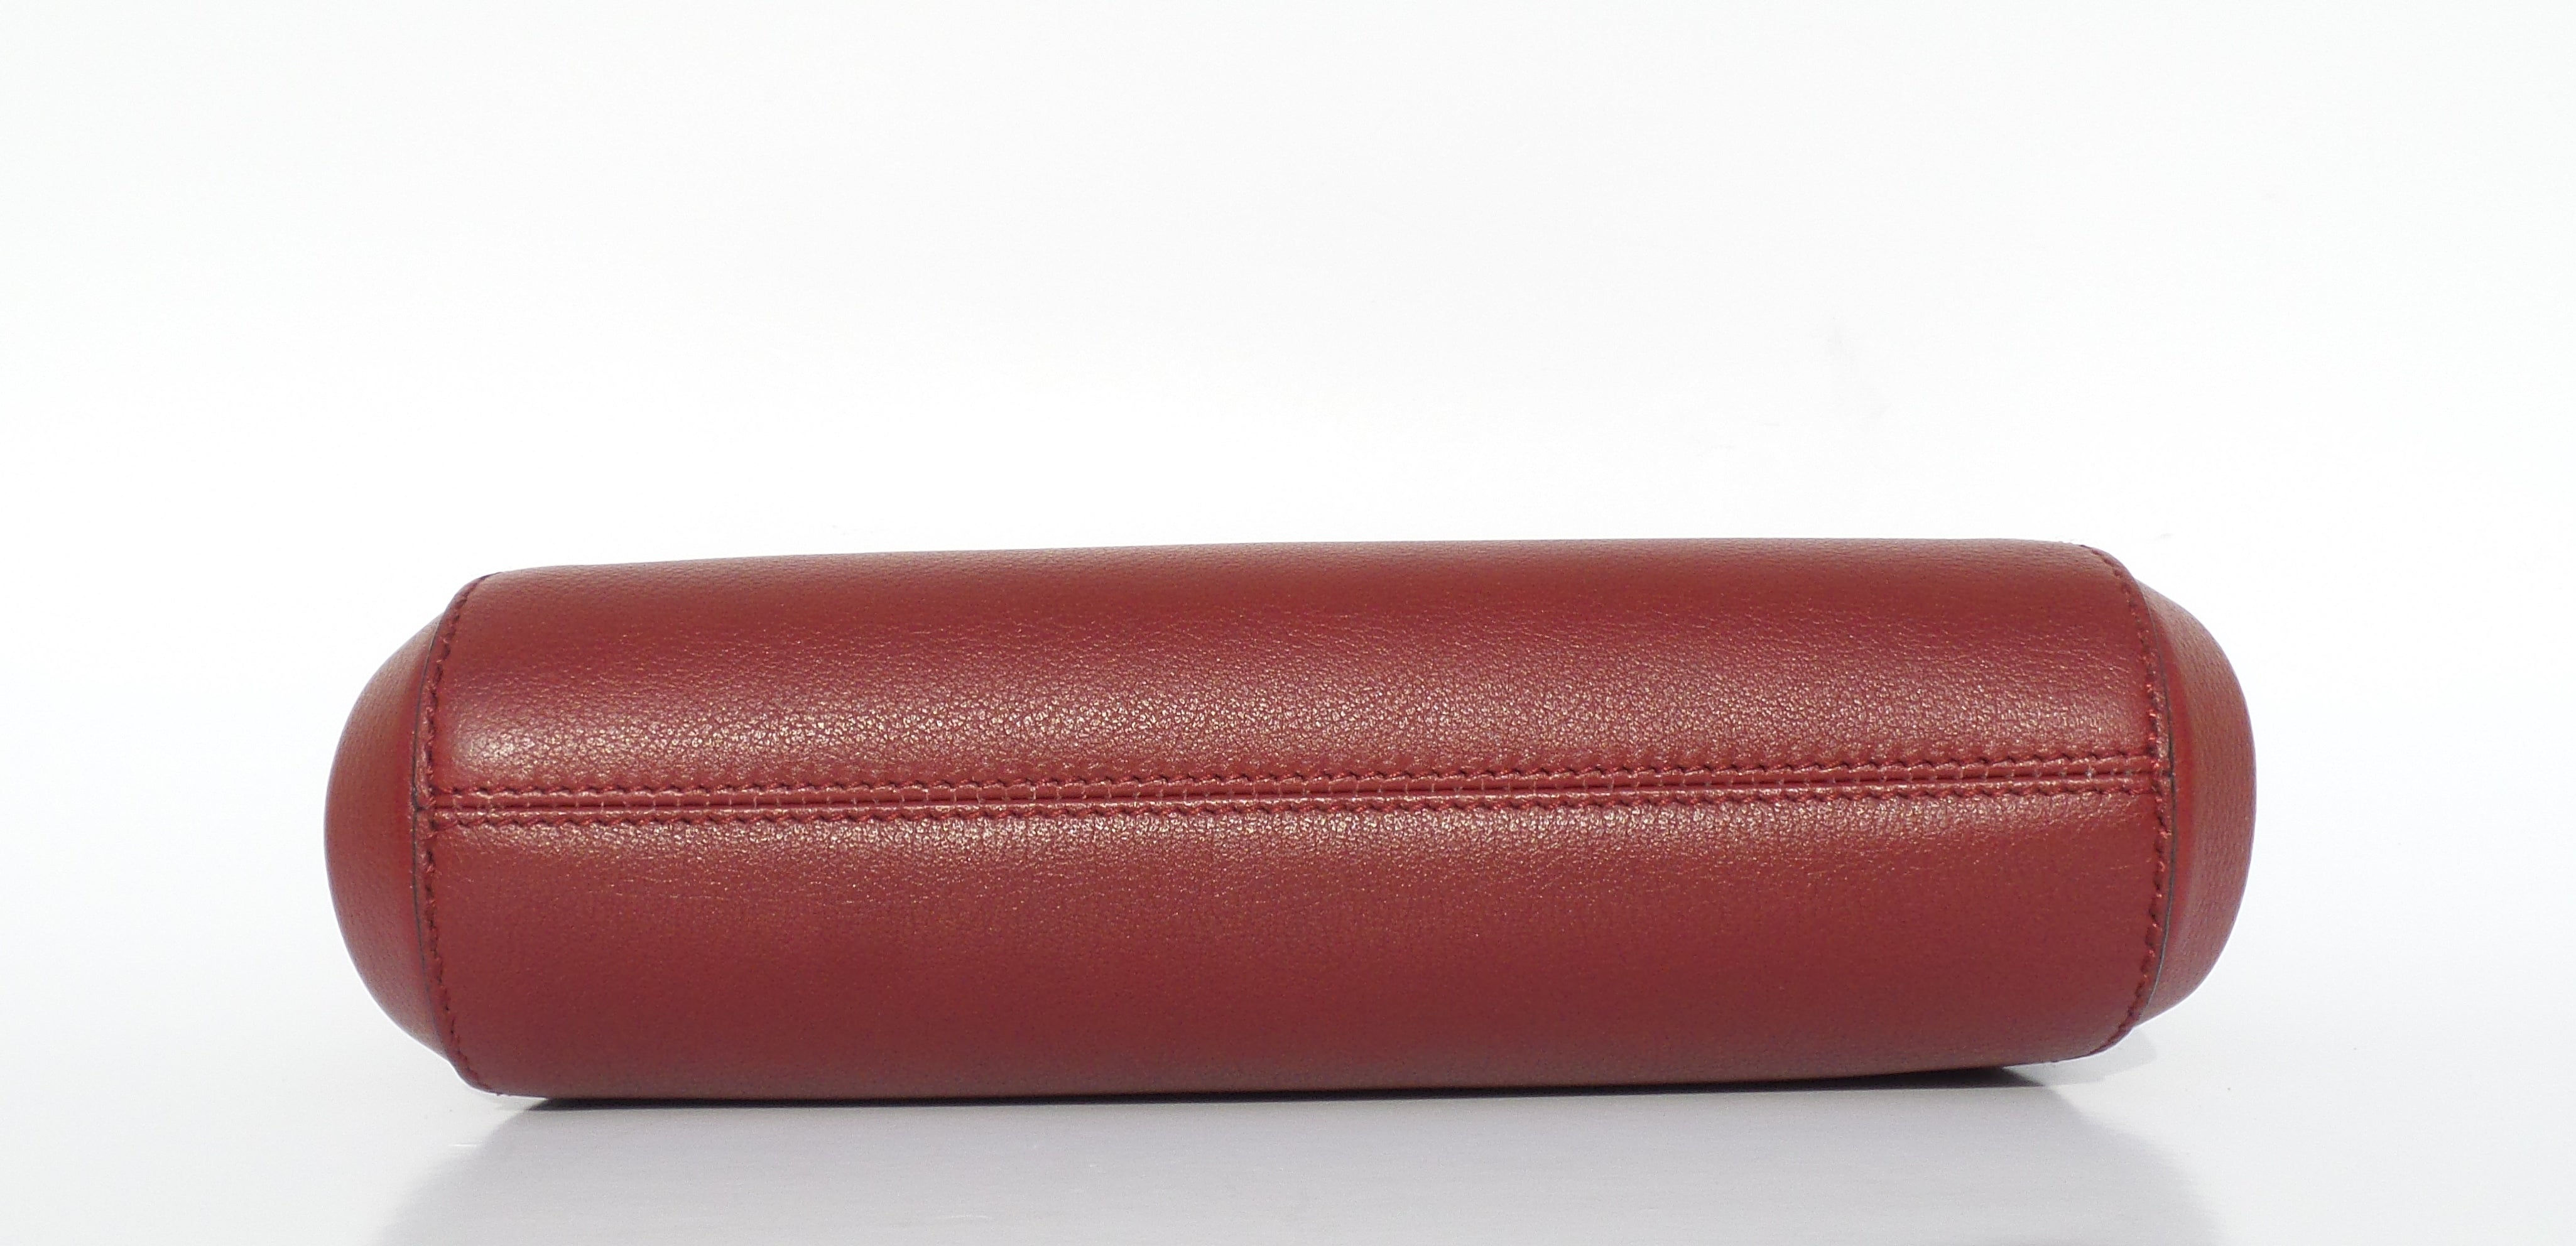 CARTIER C DE Burgundy Dark Red Taurillon Bull Leather Small Gold Zip Clutch Bag